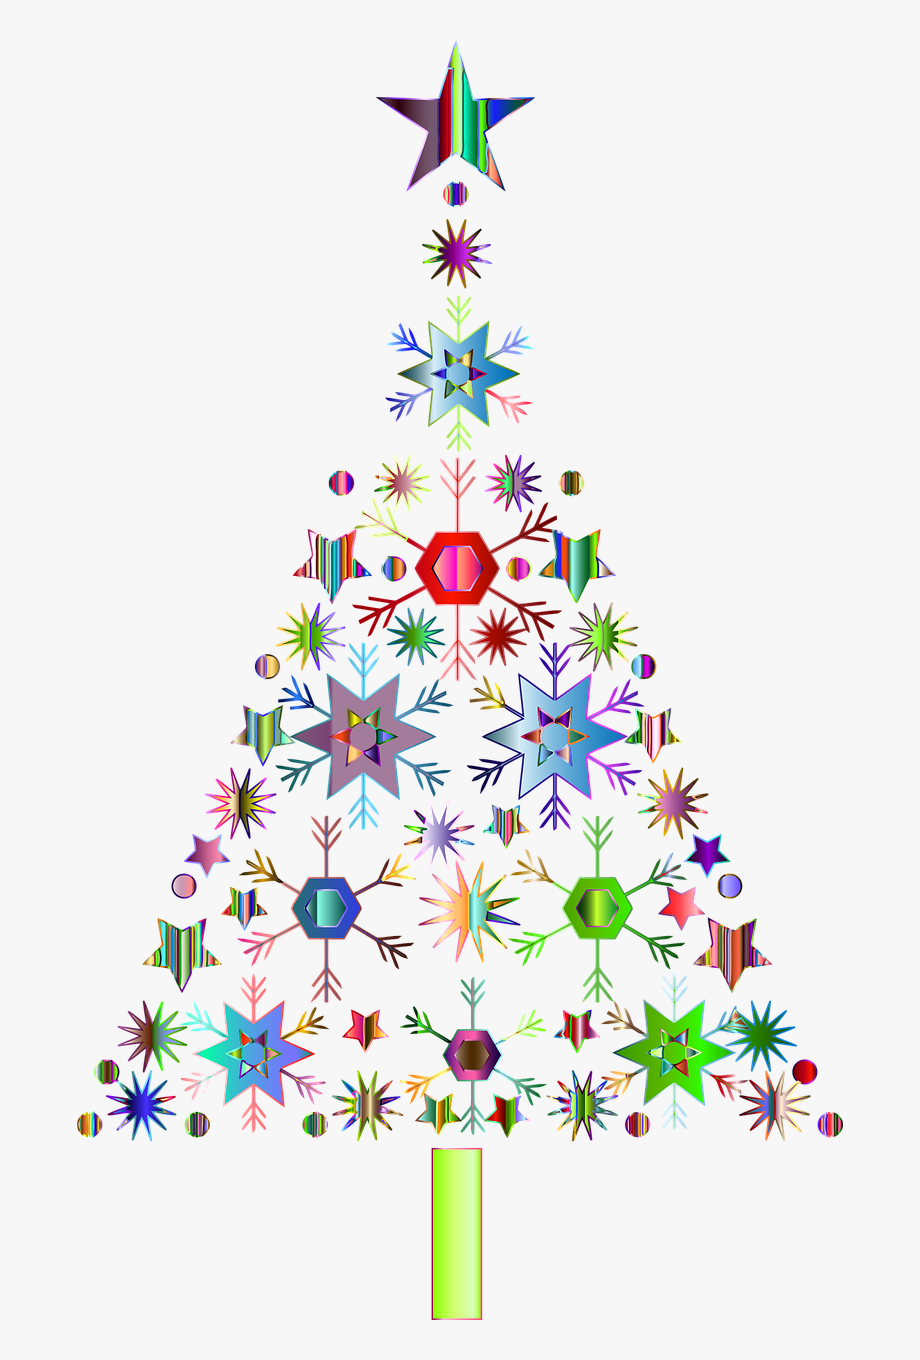 Snowflakes Christmas Tree Jesus - Transparent Background ...